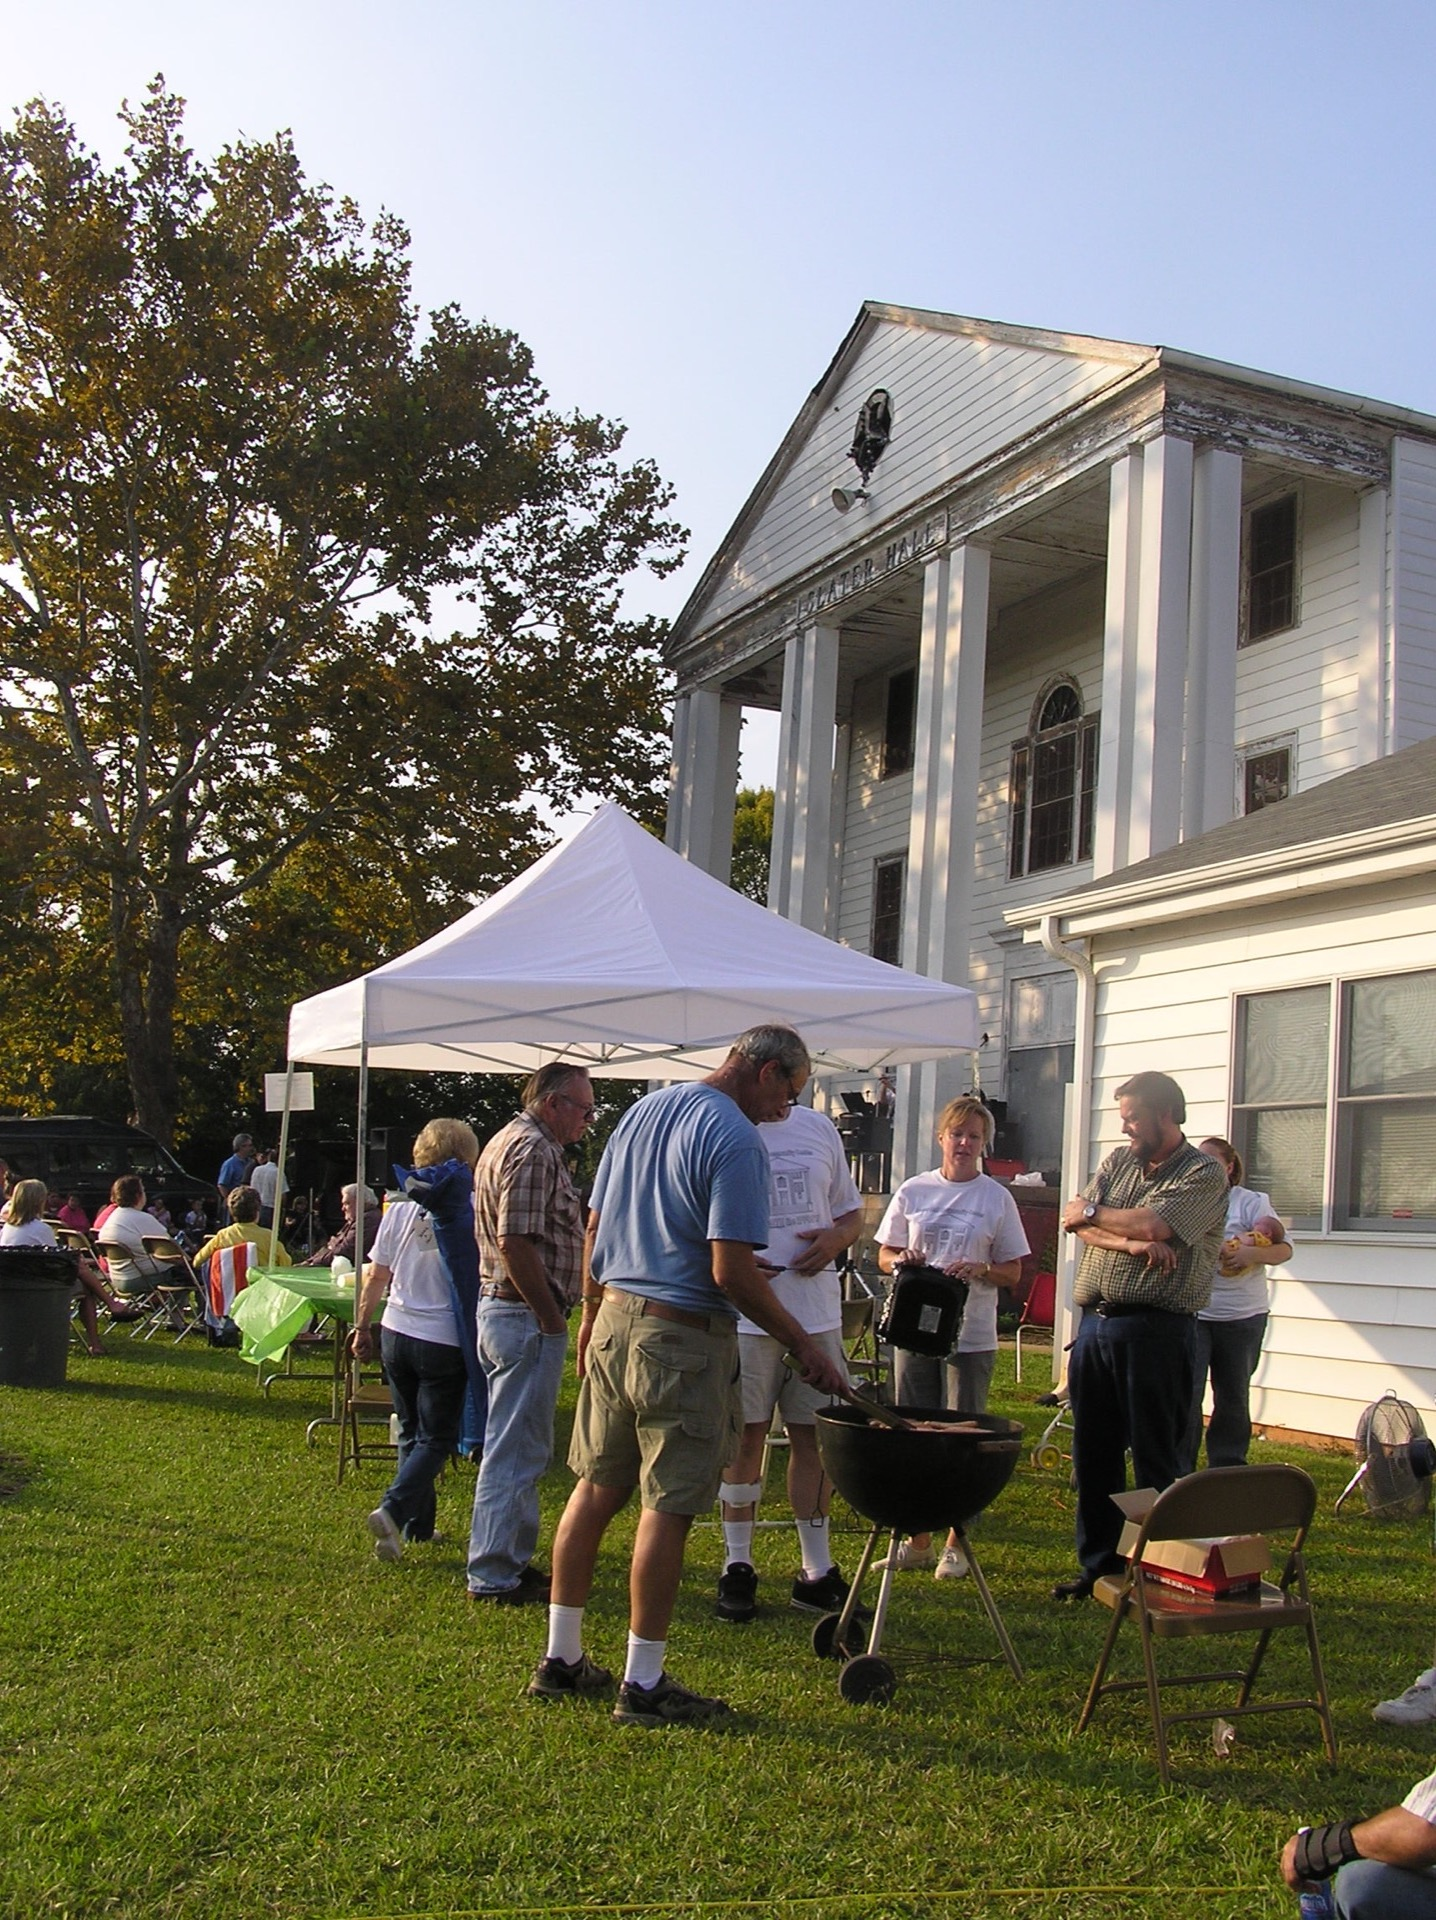 Cookout at community center building